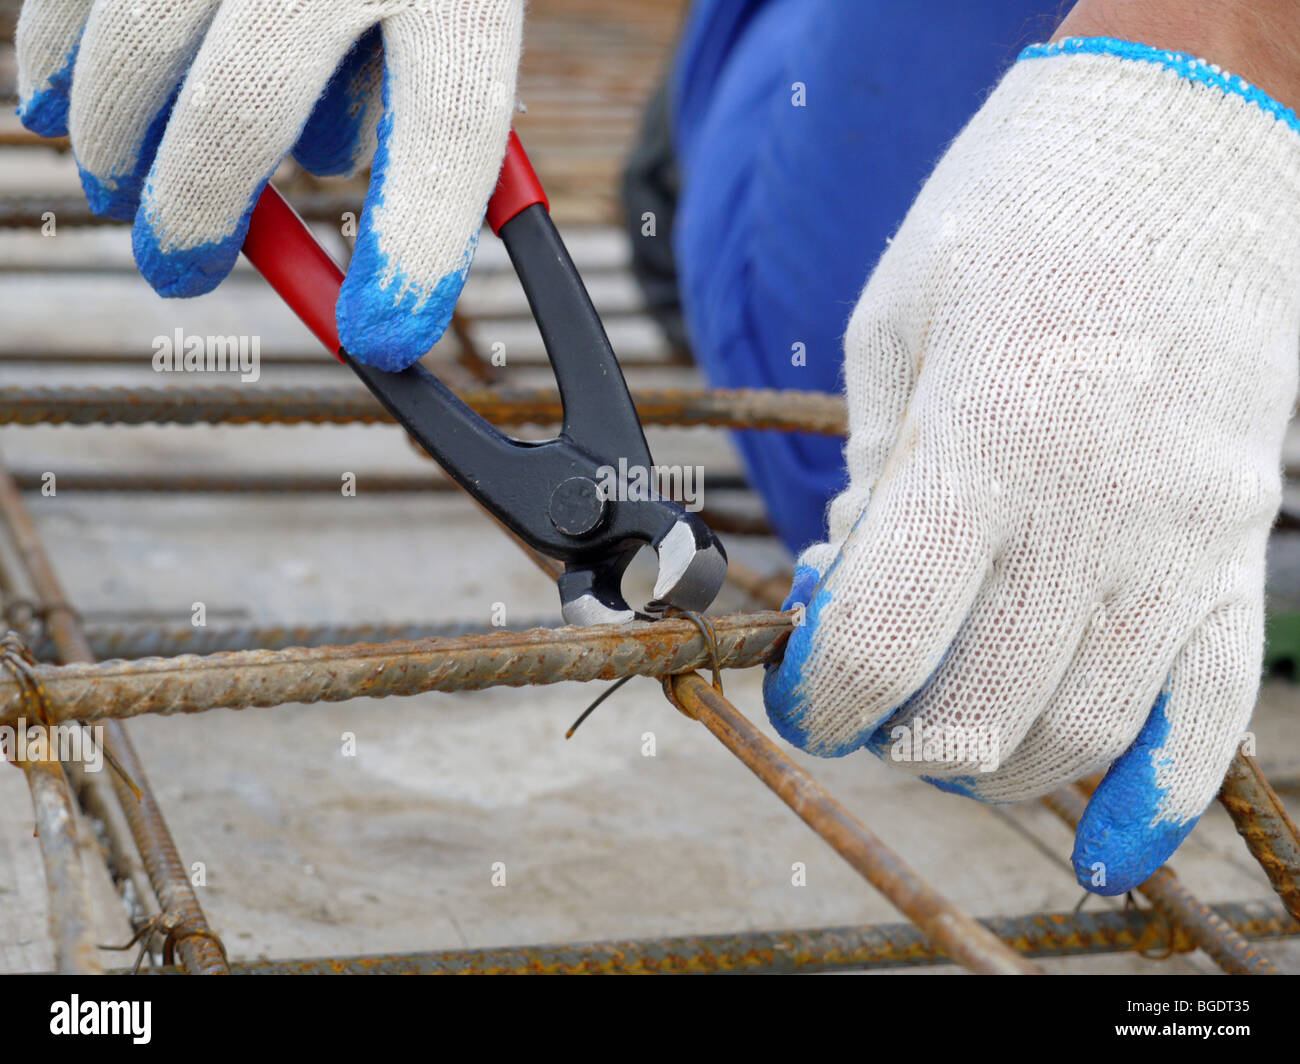 Steel Reinforcement Bars Stockfotos & Steel Reinforcement Bars ...